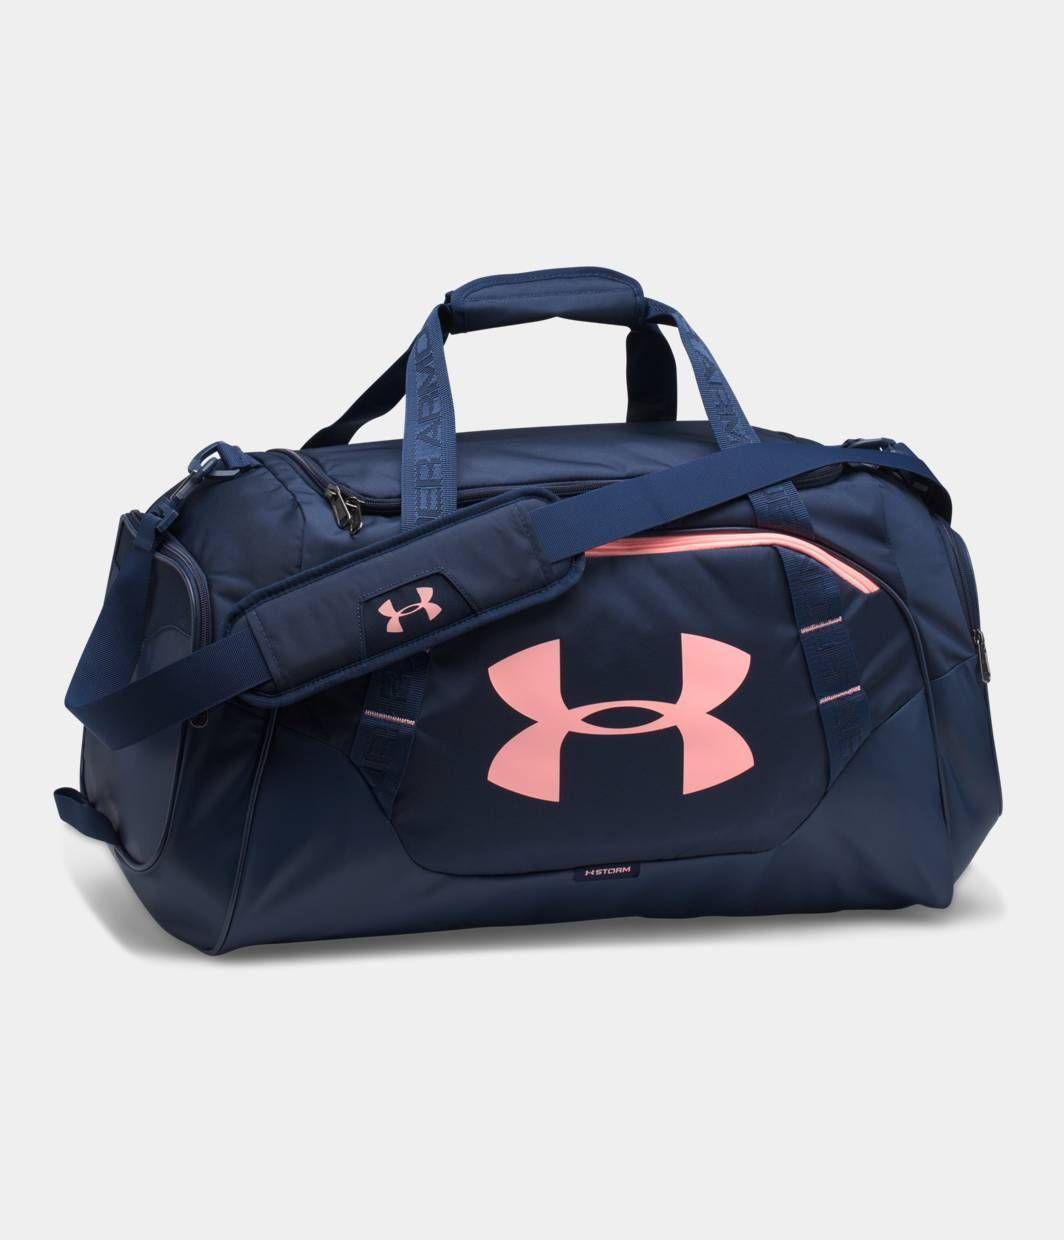 ae02c94c8516e Under Armour UA Undeniable 3.0 Medium Duffle Bag All Sport Duffel Gym Bag